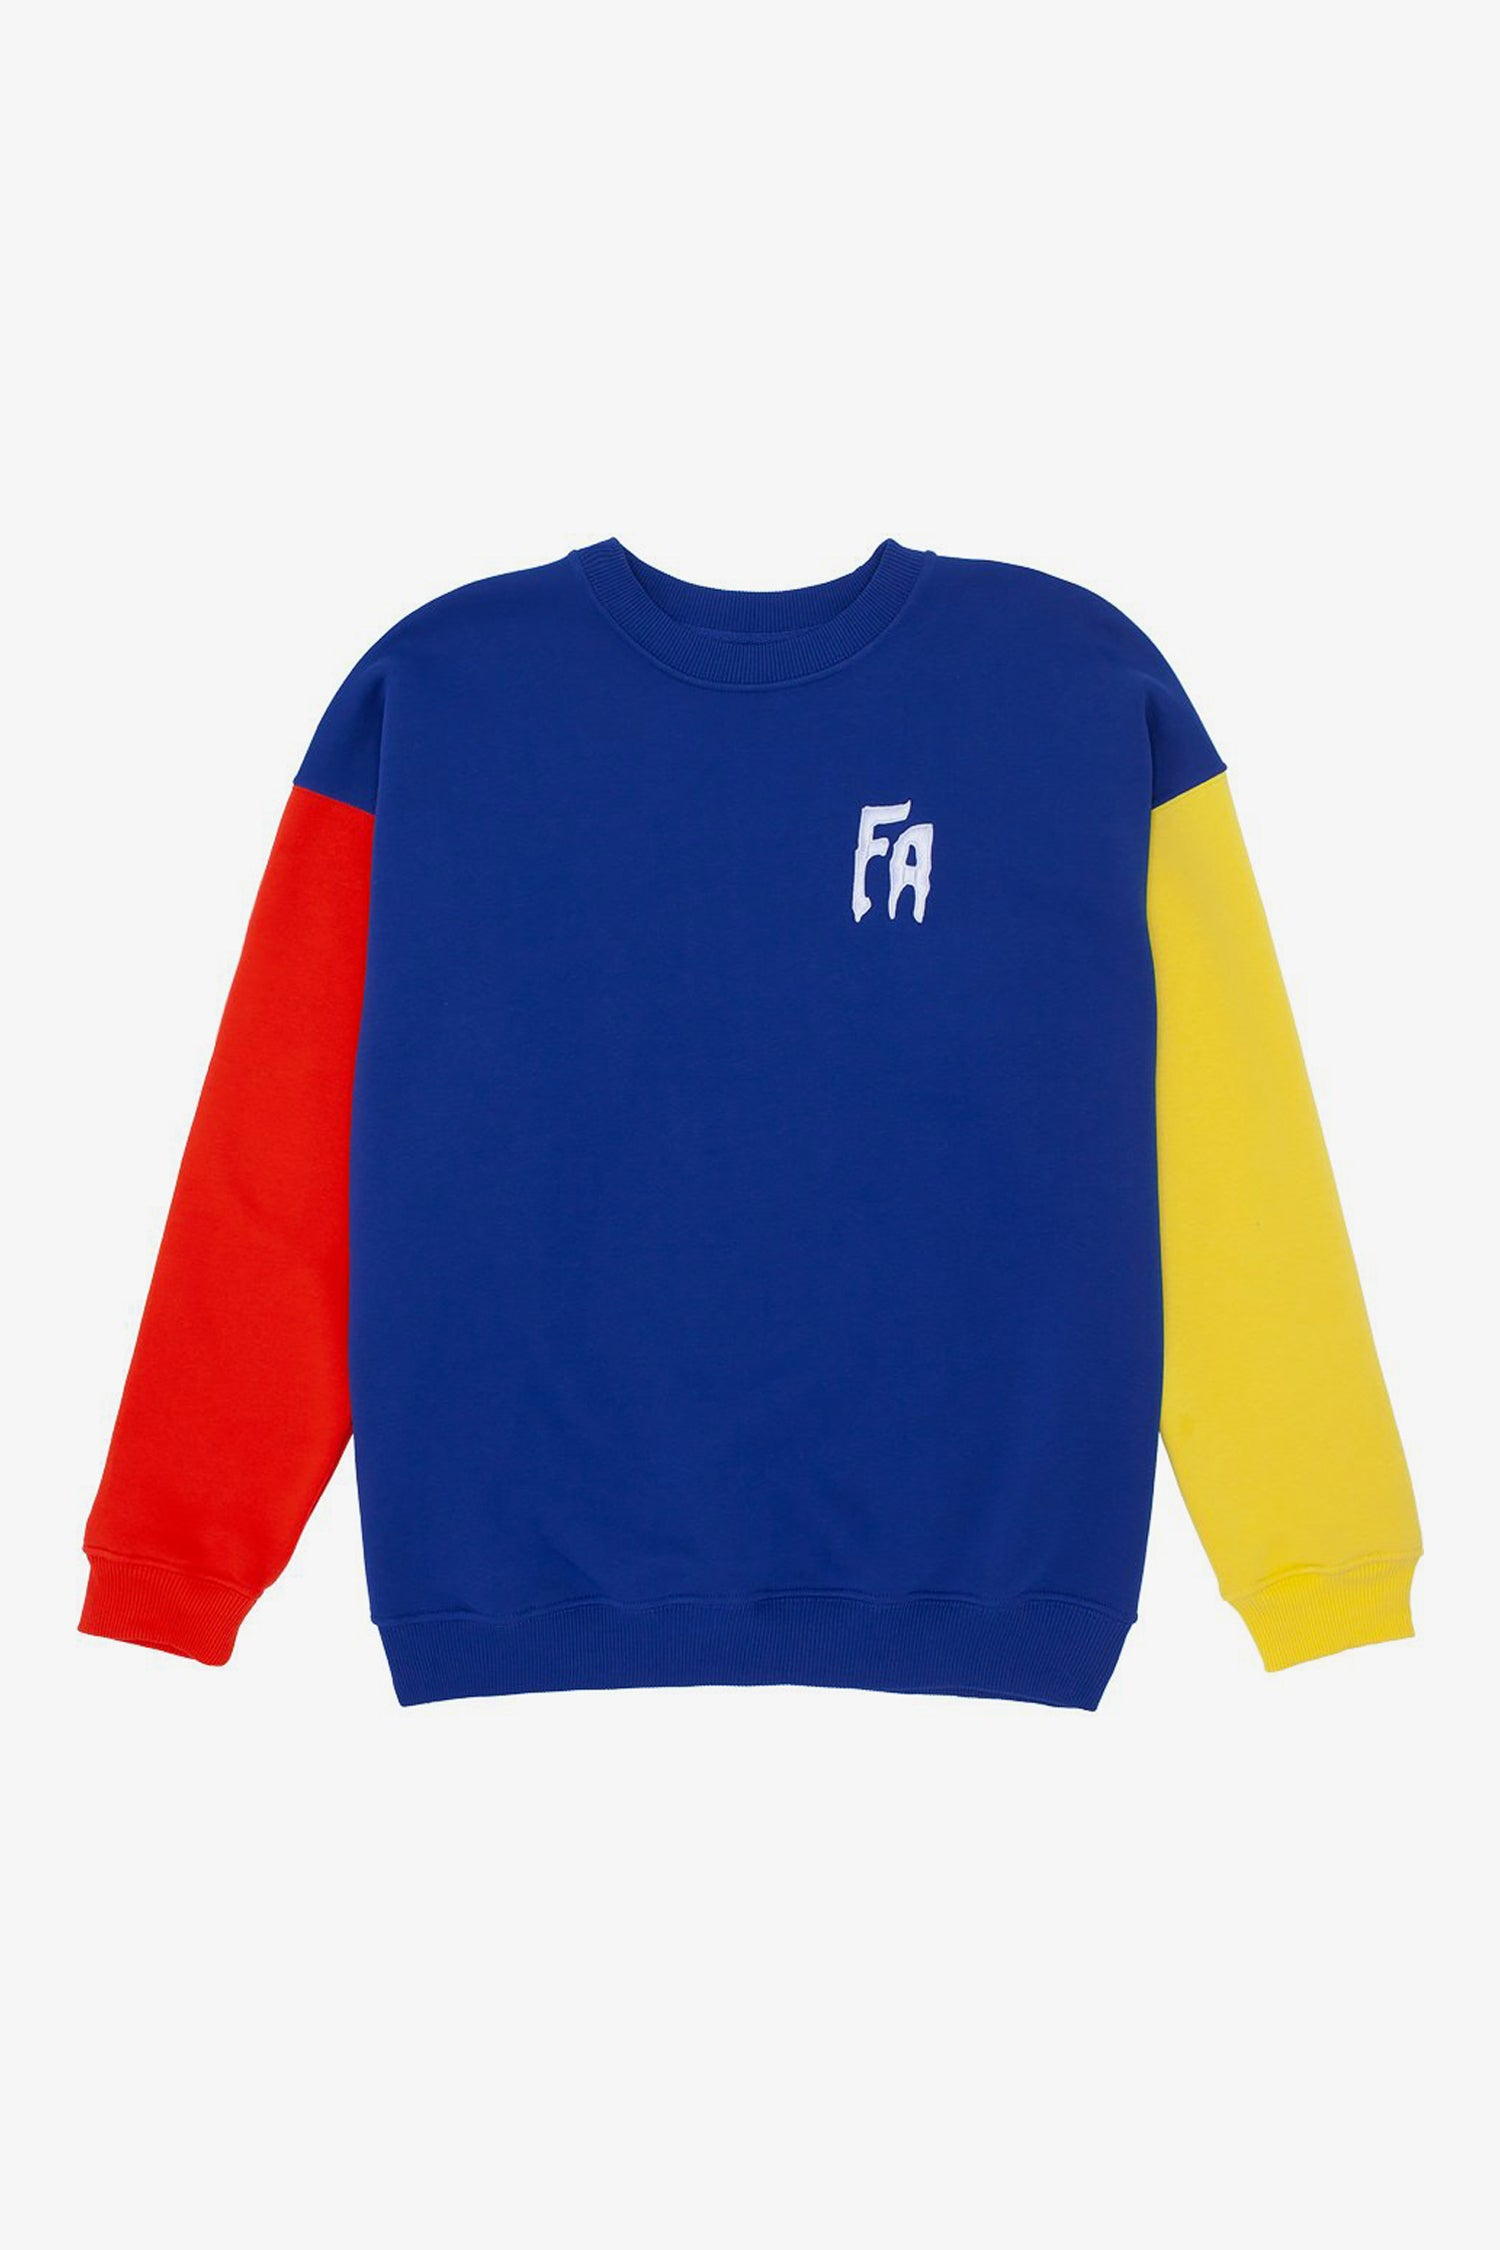 Selectshop FRAME - FUCKING AWESOME FA Primary Crewneck Sweatshirt Sweats-Knits Dubai